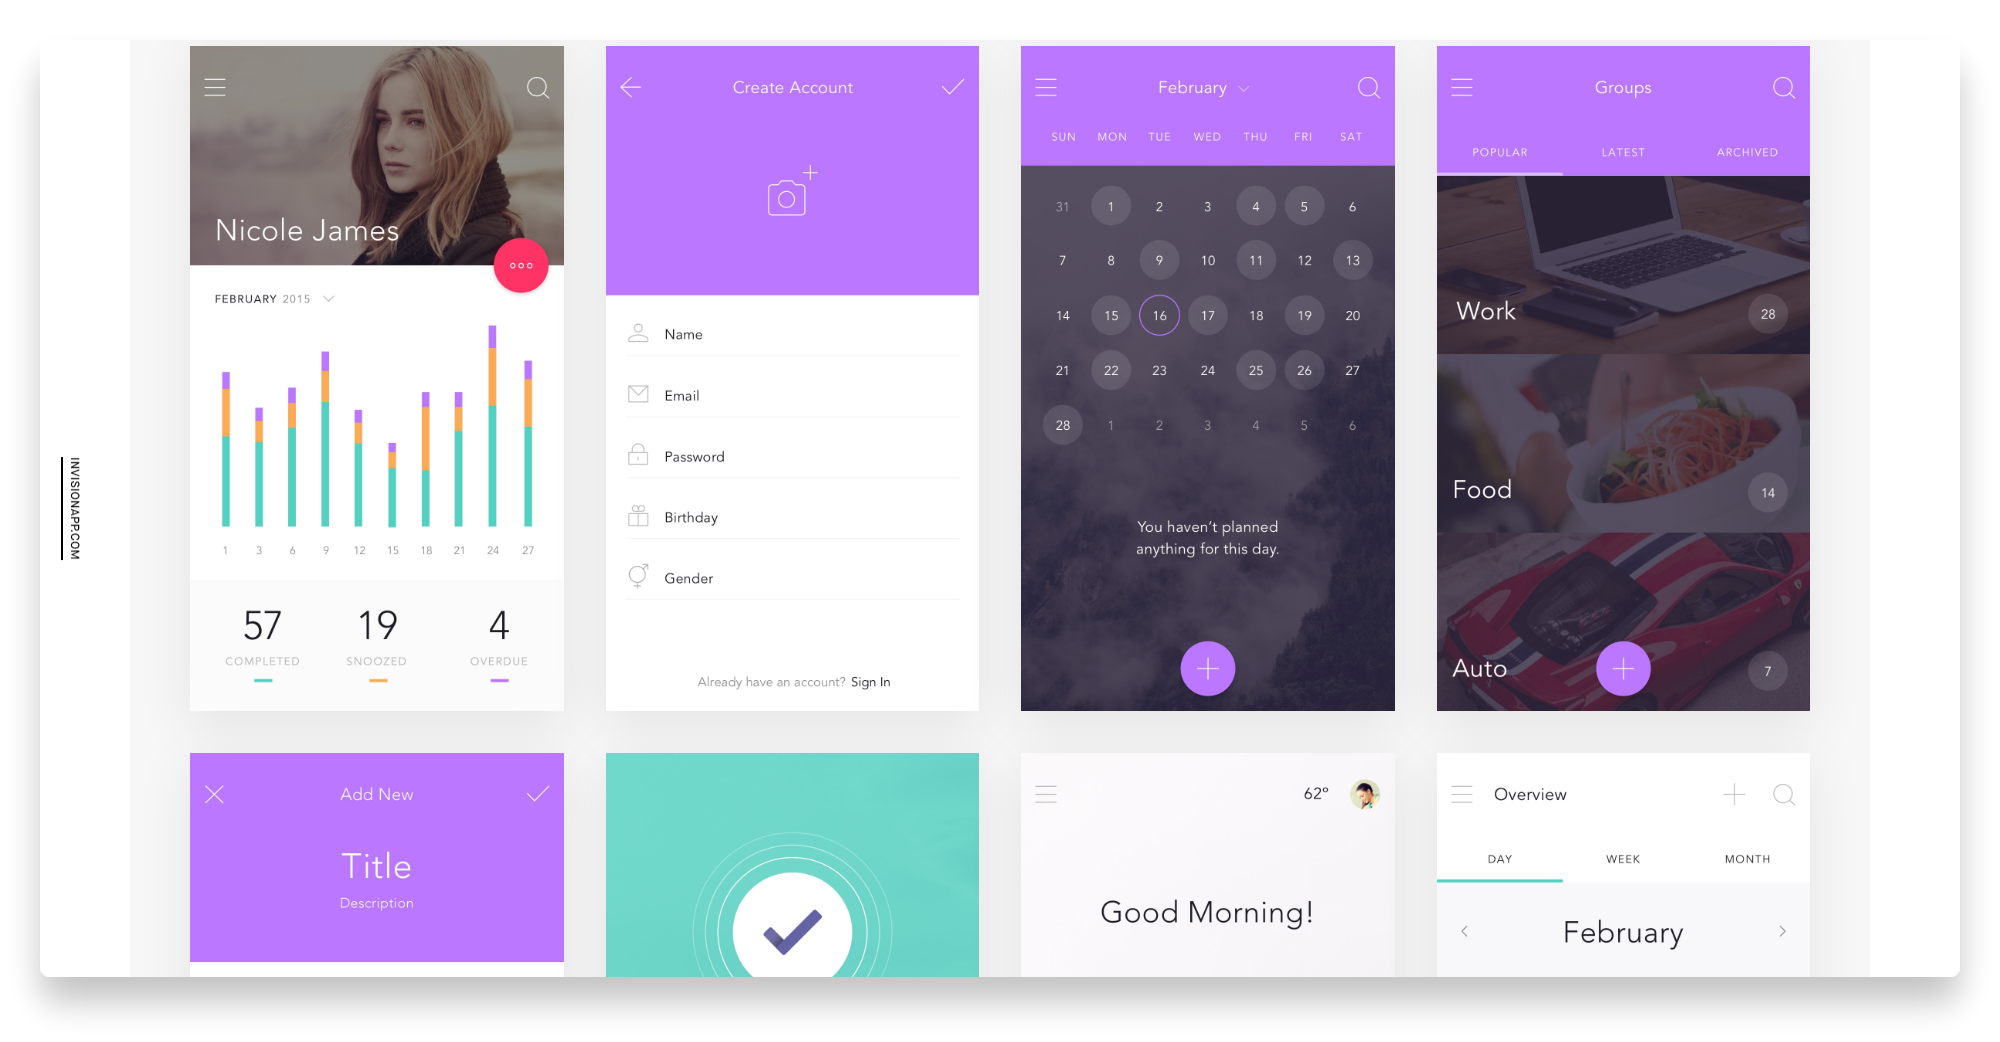 Free UI design kits: best places and resources to get them